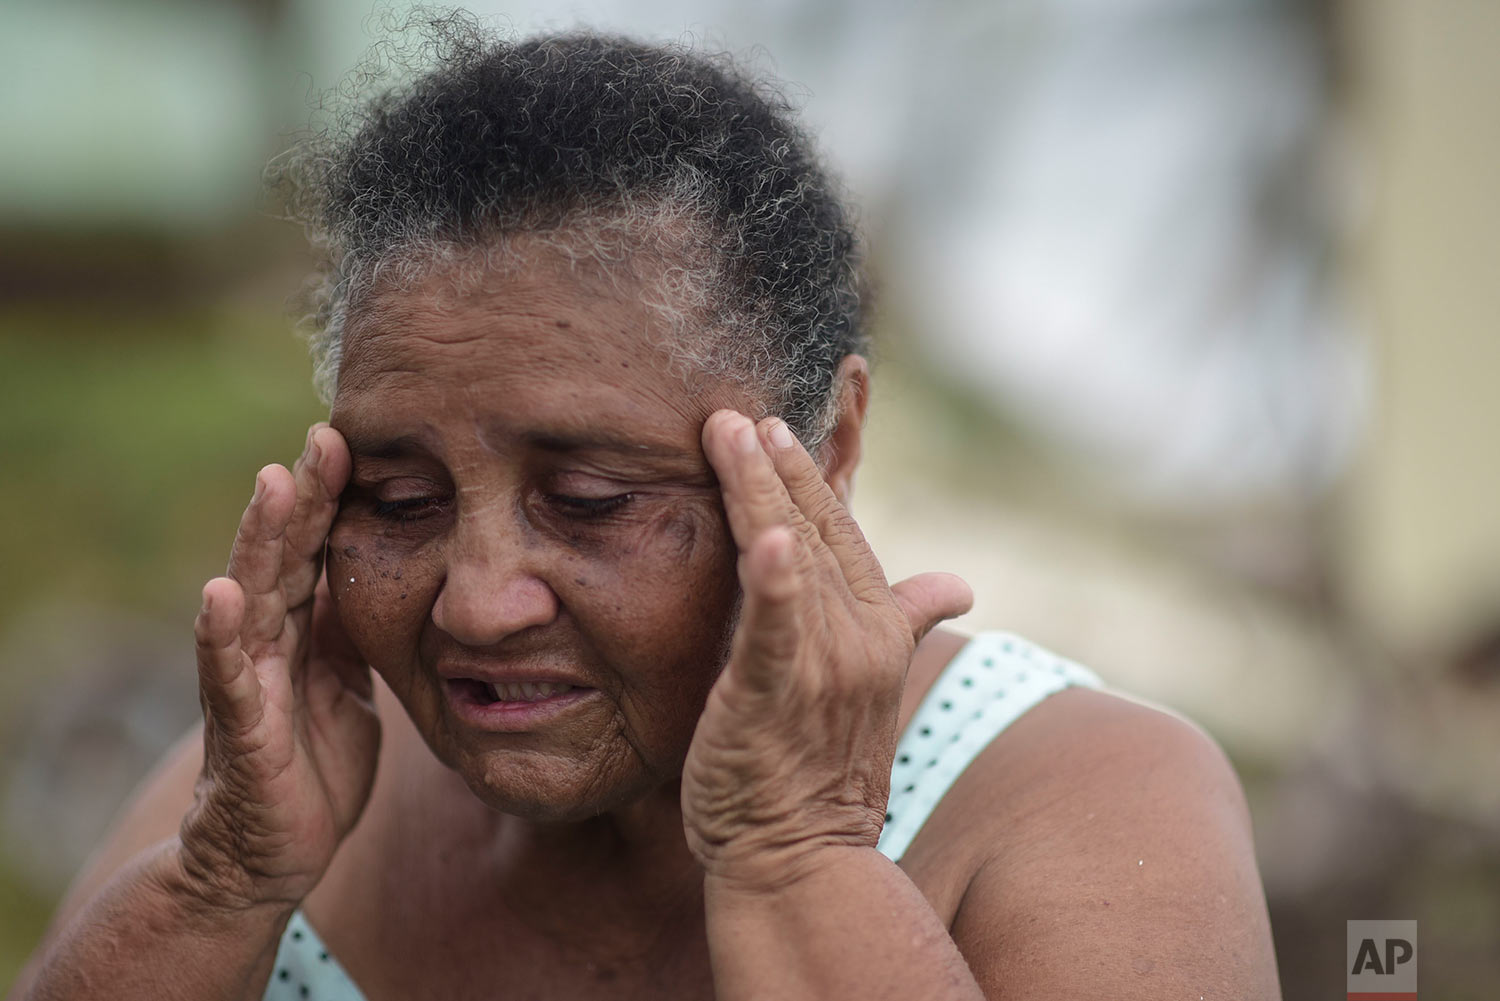 El Negro community resident Irma Torres Rodriguez tries to stay calm after loosing a portion of her roof to the fury of Hurricane Maria, in Puerto Rico, Thursday, September 21, 2017.(AP Photo/Carlos Giusti)